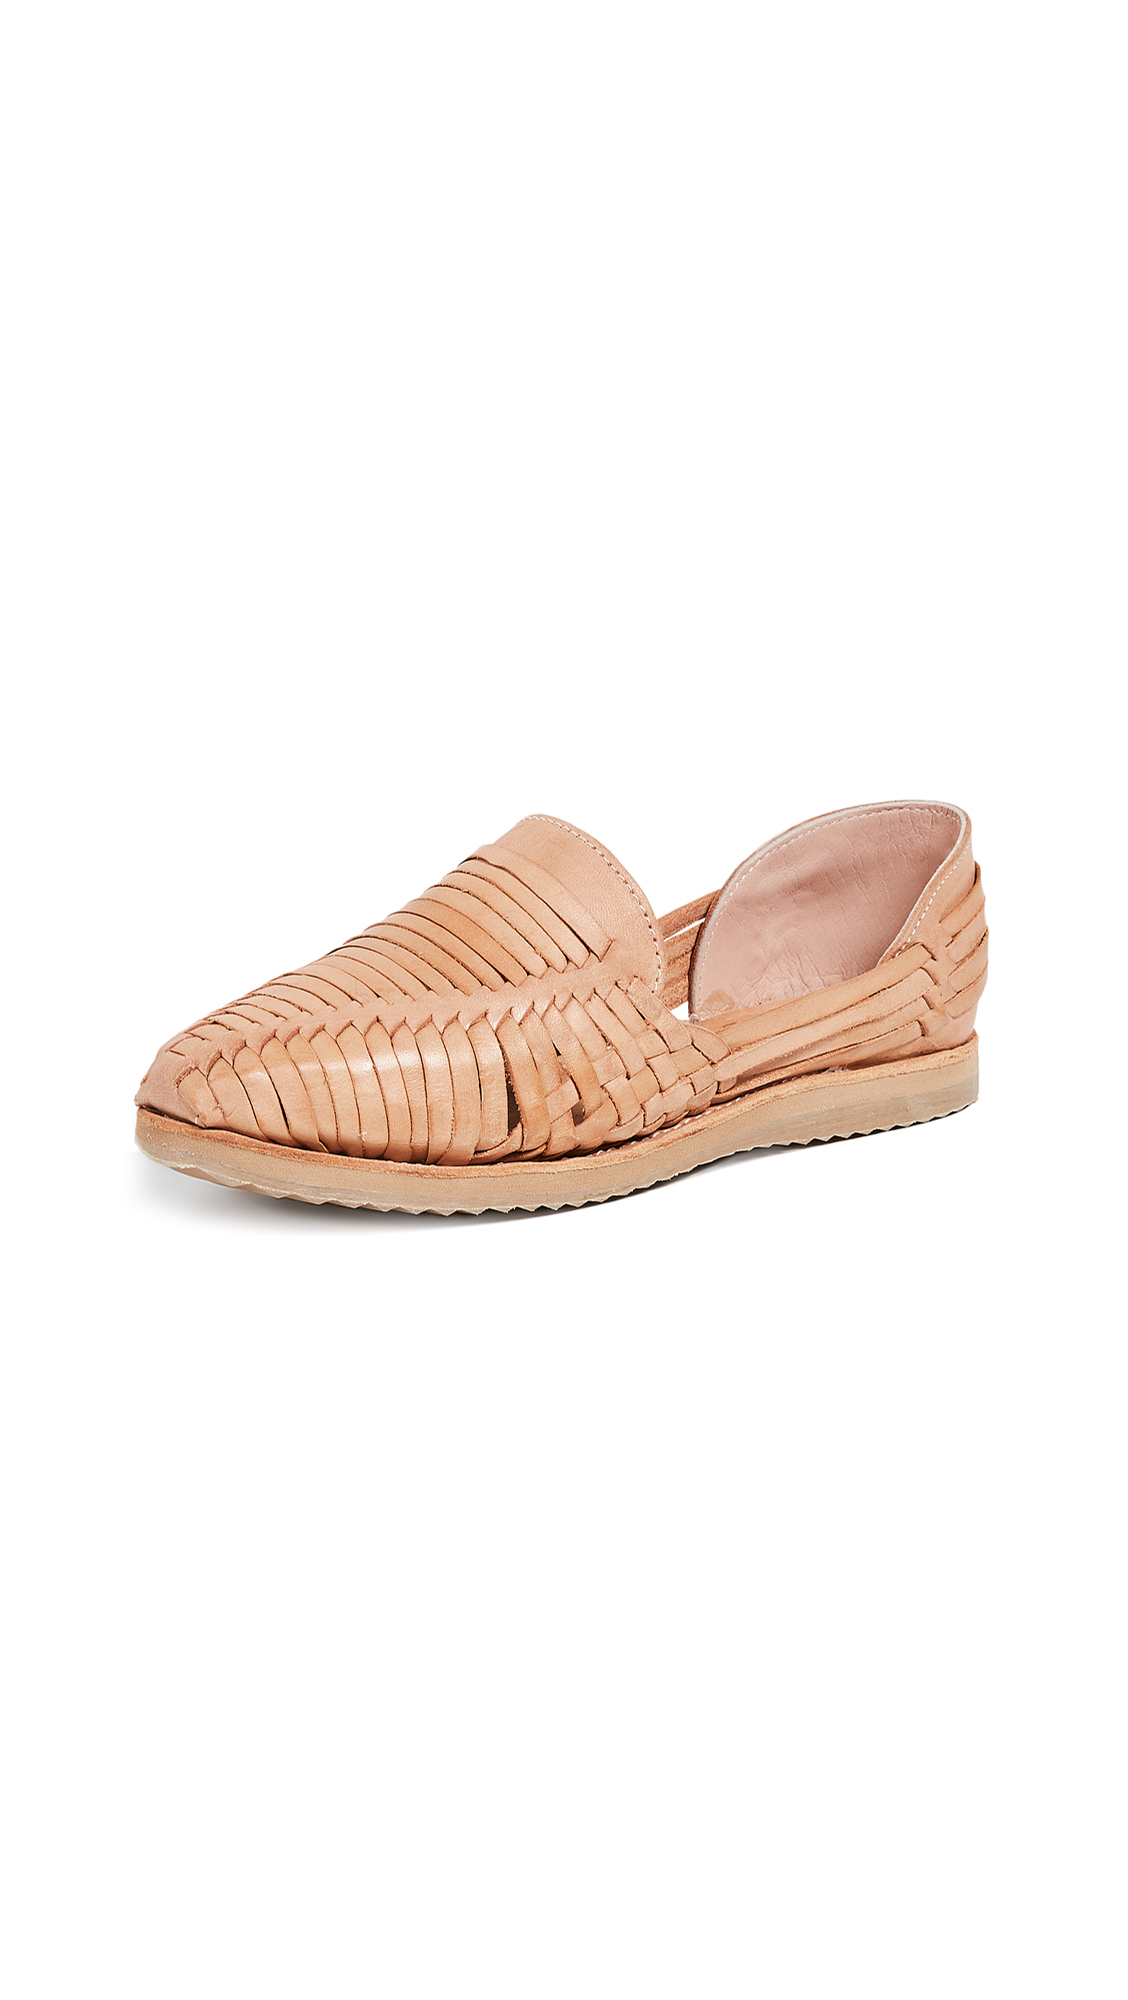 Brother Vellies Huaraches Flats - Whiskey